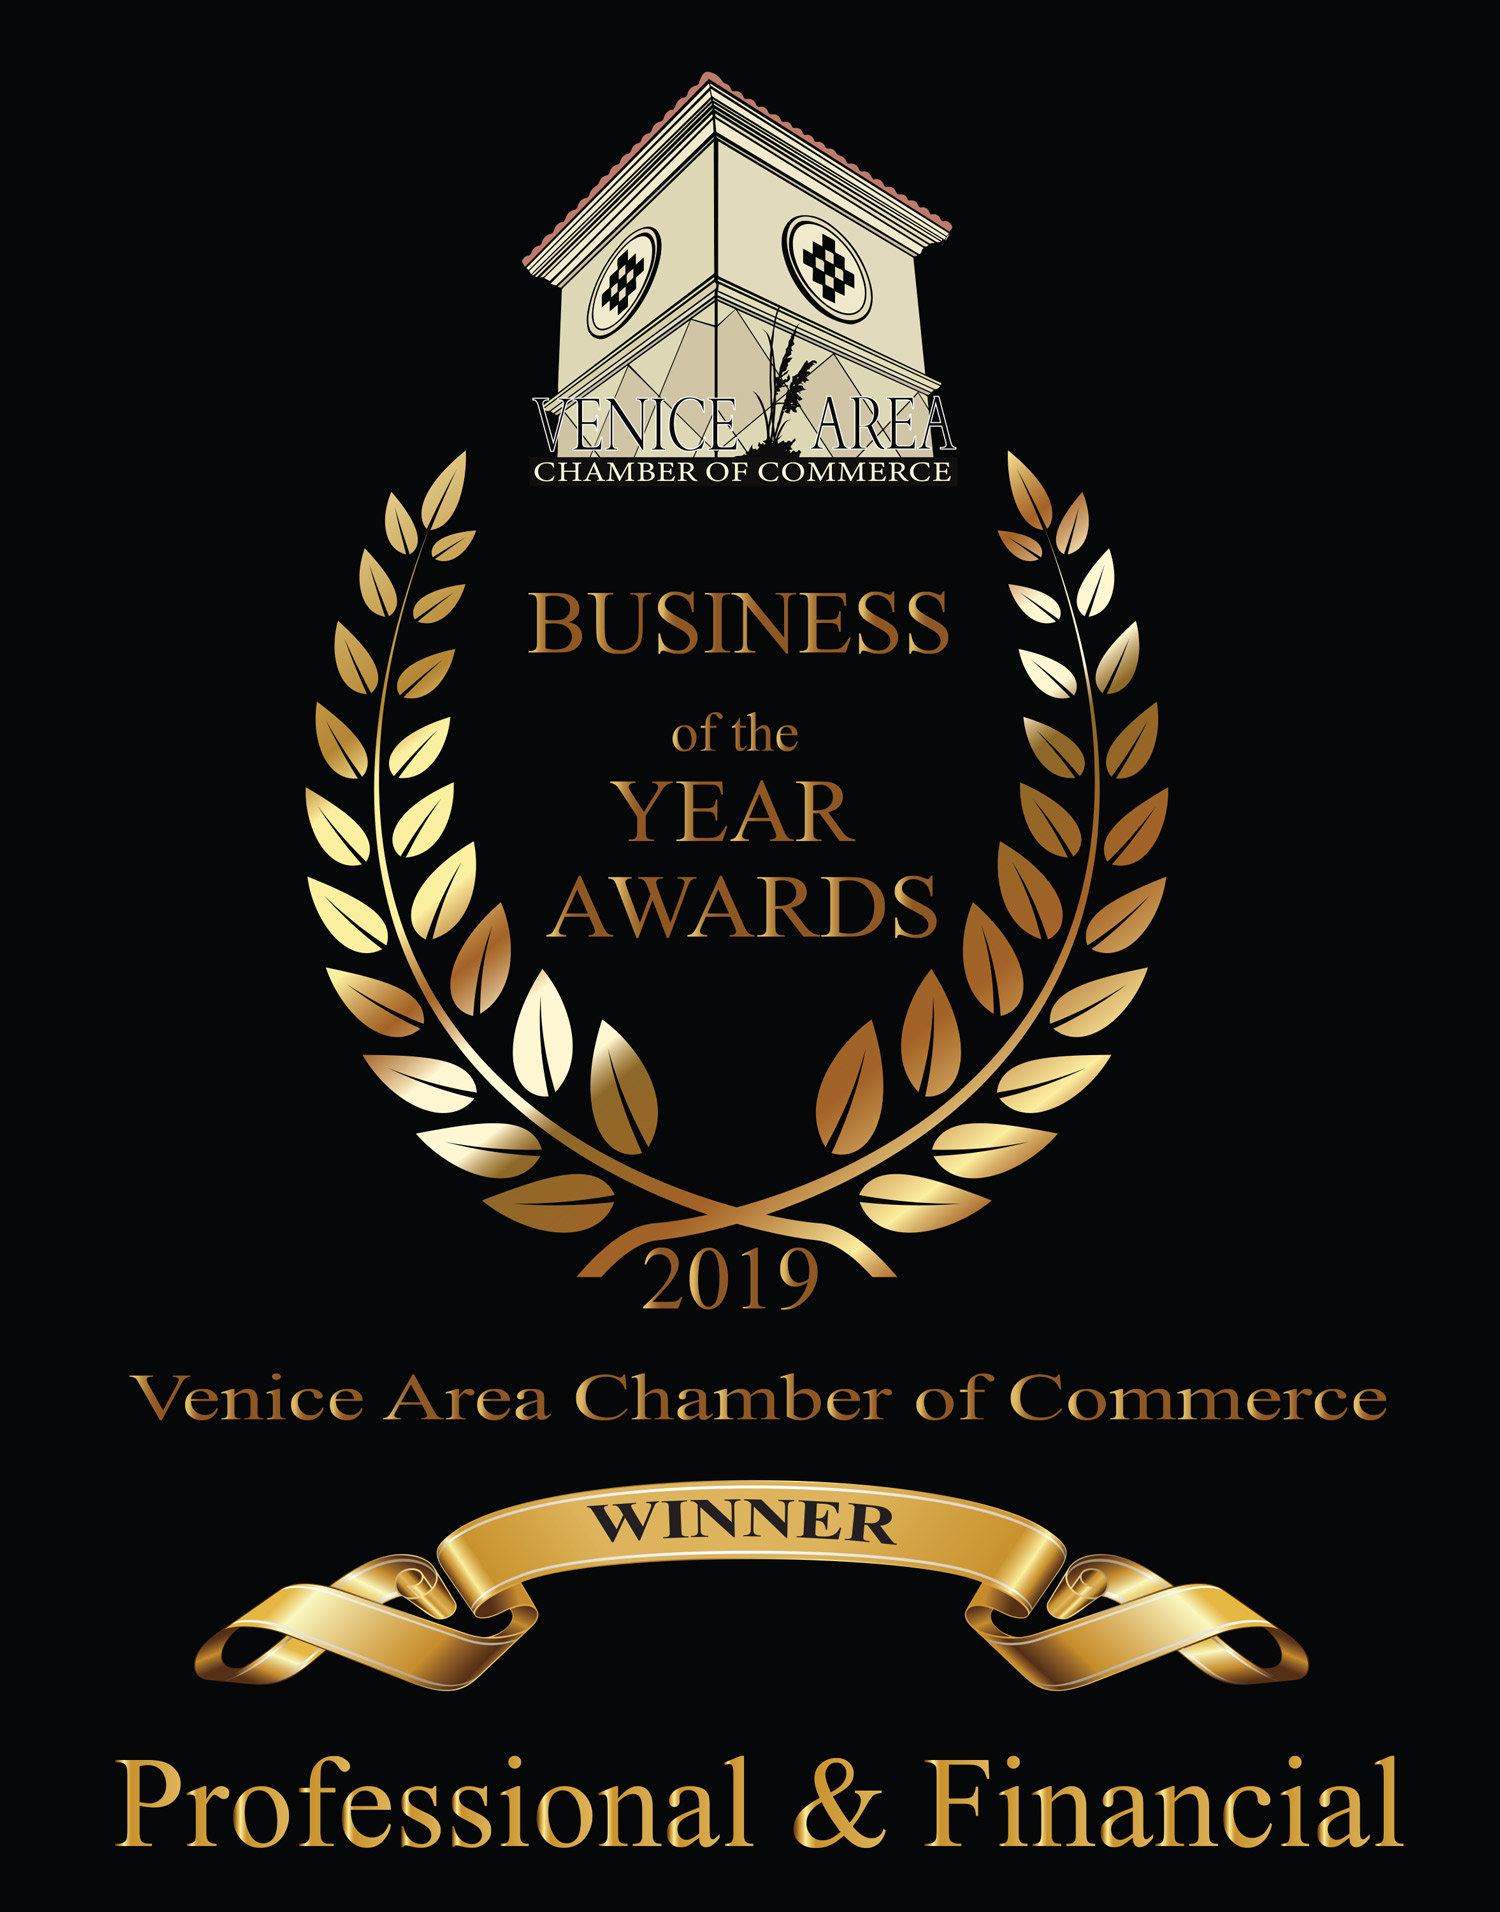 2019 Business of the Year Award